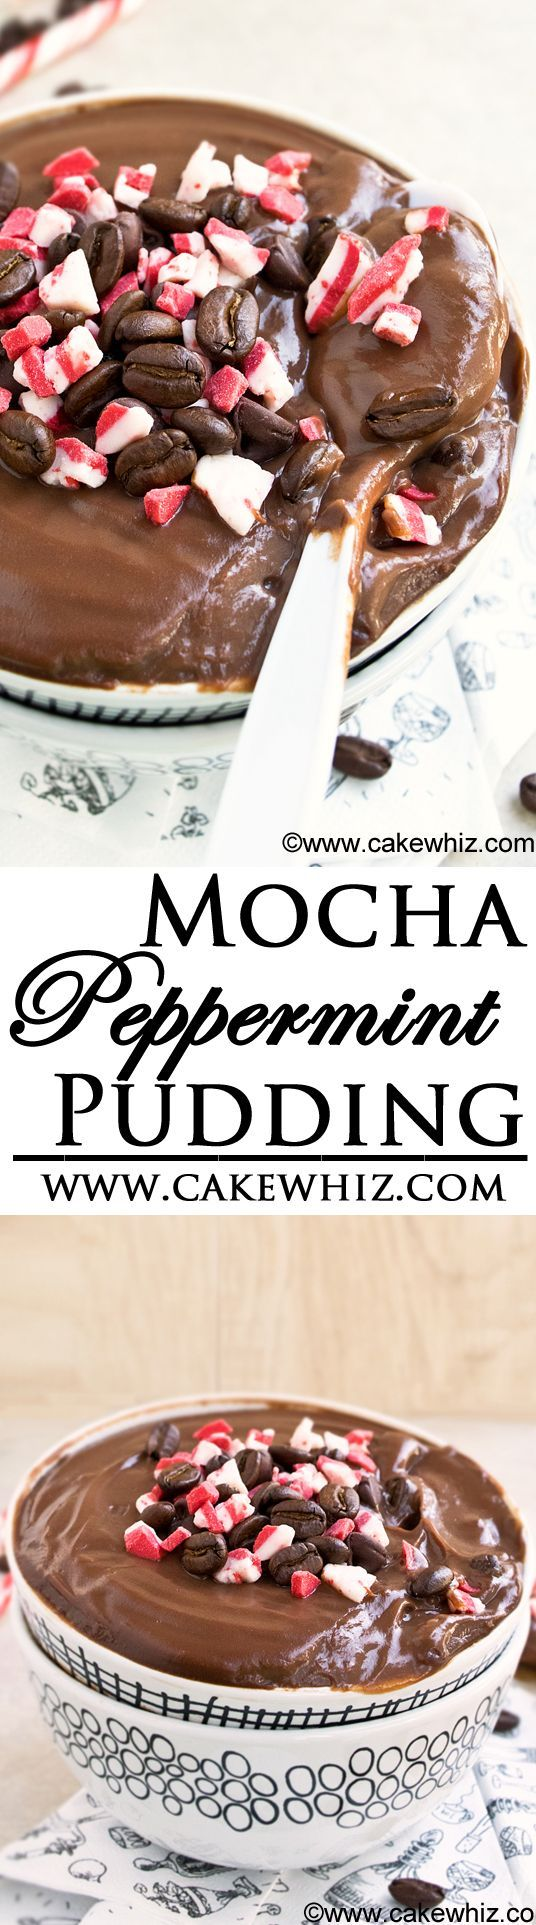 This rich and creamy MOCHA PEPPERMINT PUDDING is the easiest dessert you will ever make! Packed with chocolate and coffee flavors and perfect for serving on Christmas! From cakewhiz.com